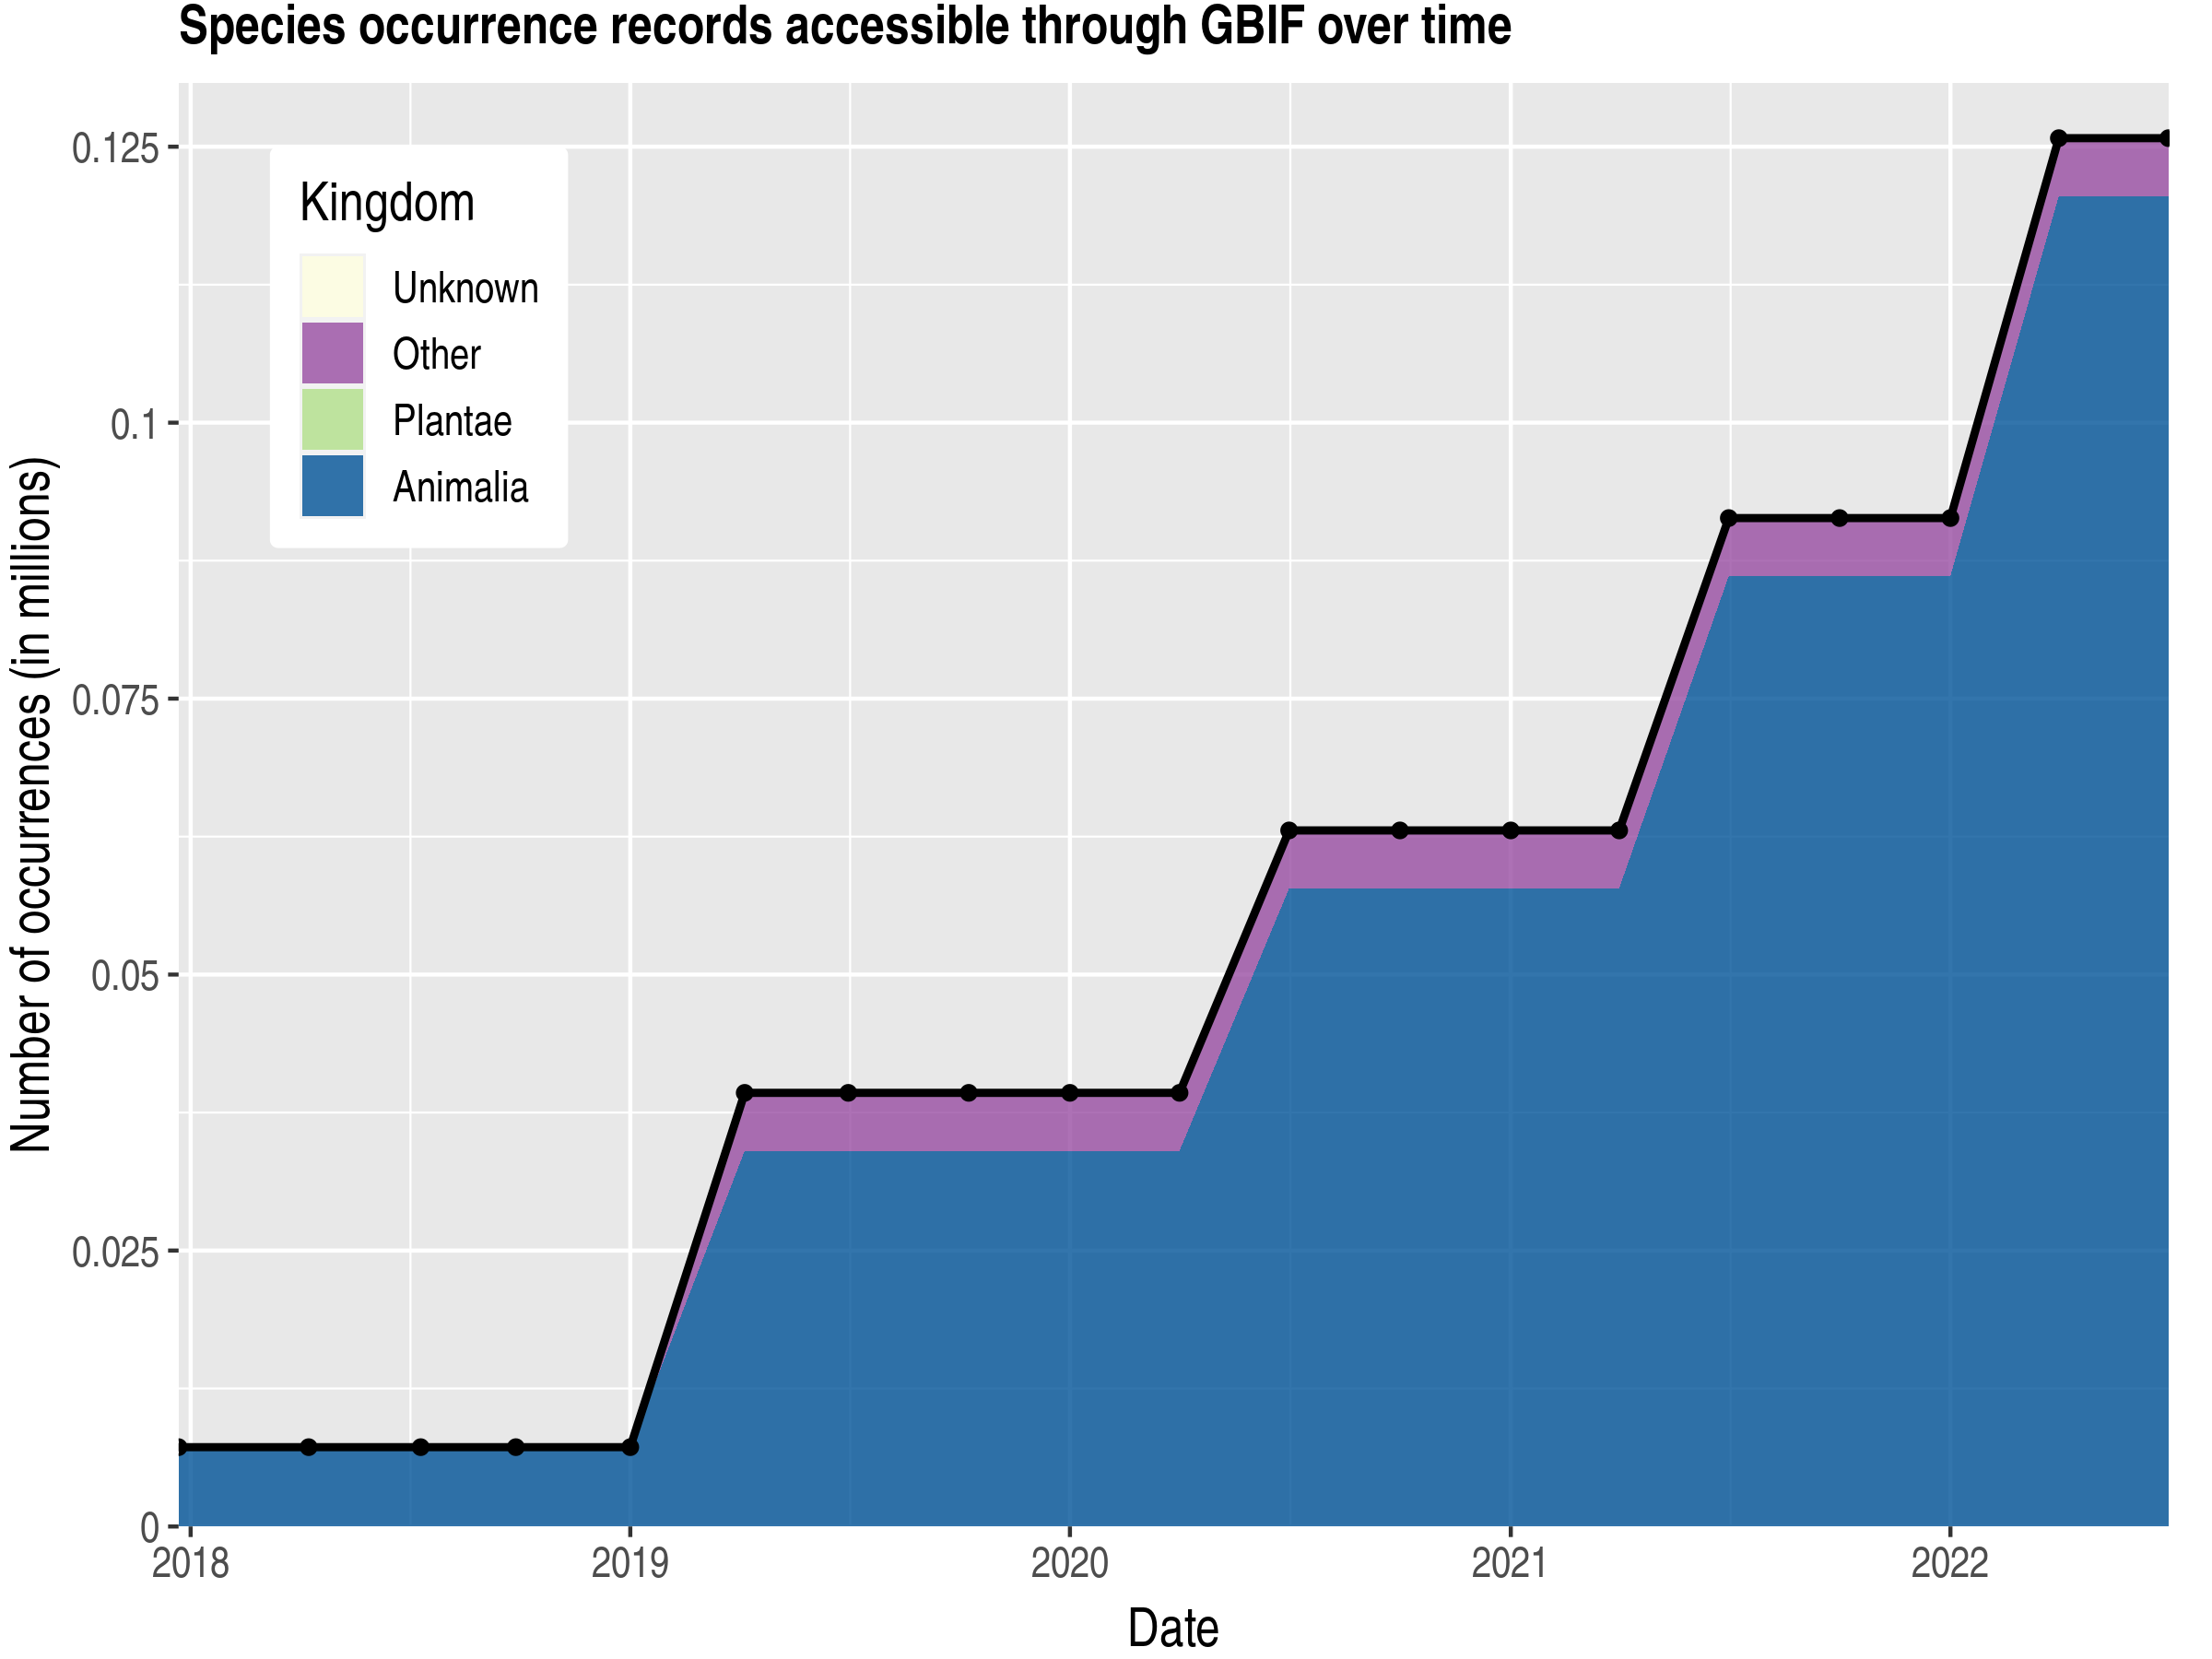 Data trend of records by kingdom published by French Guiana